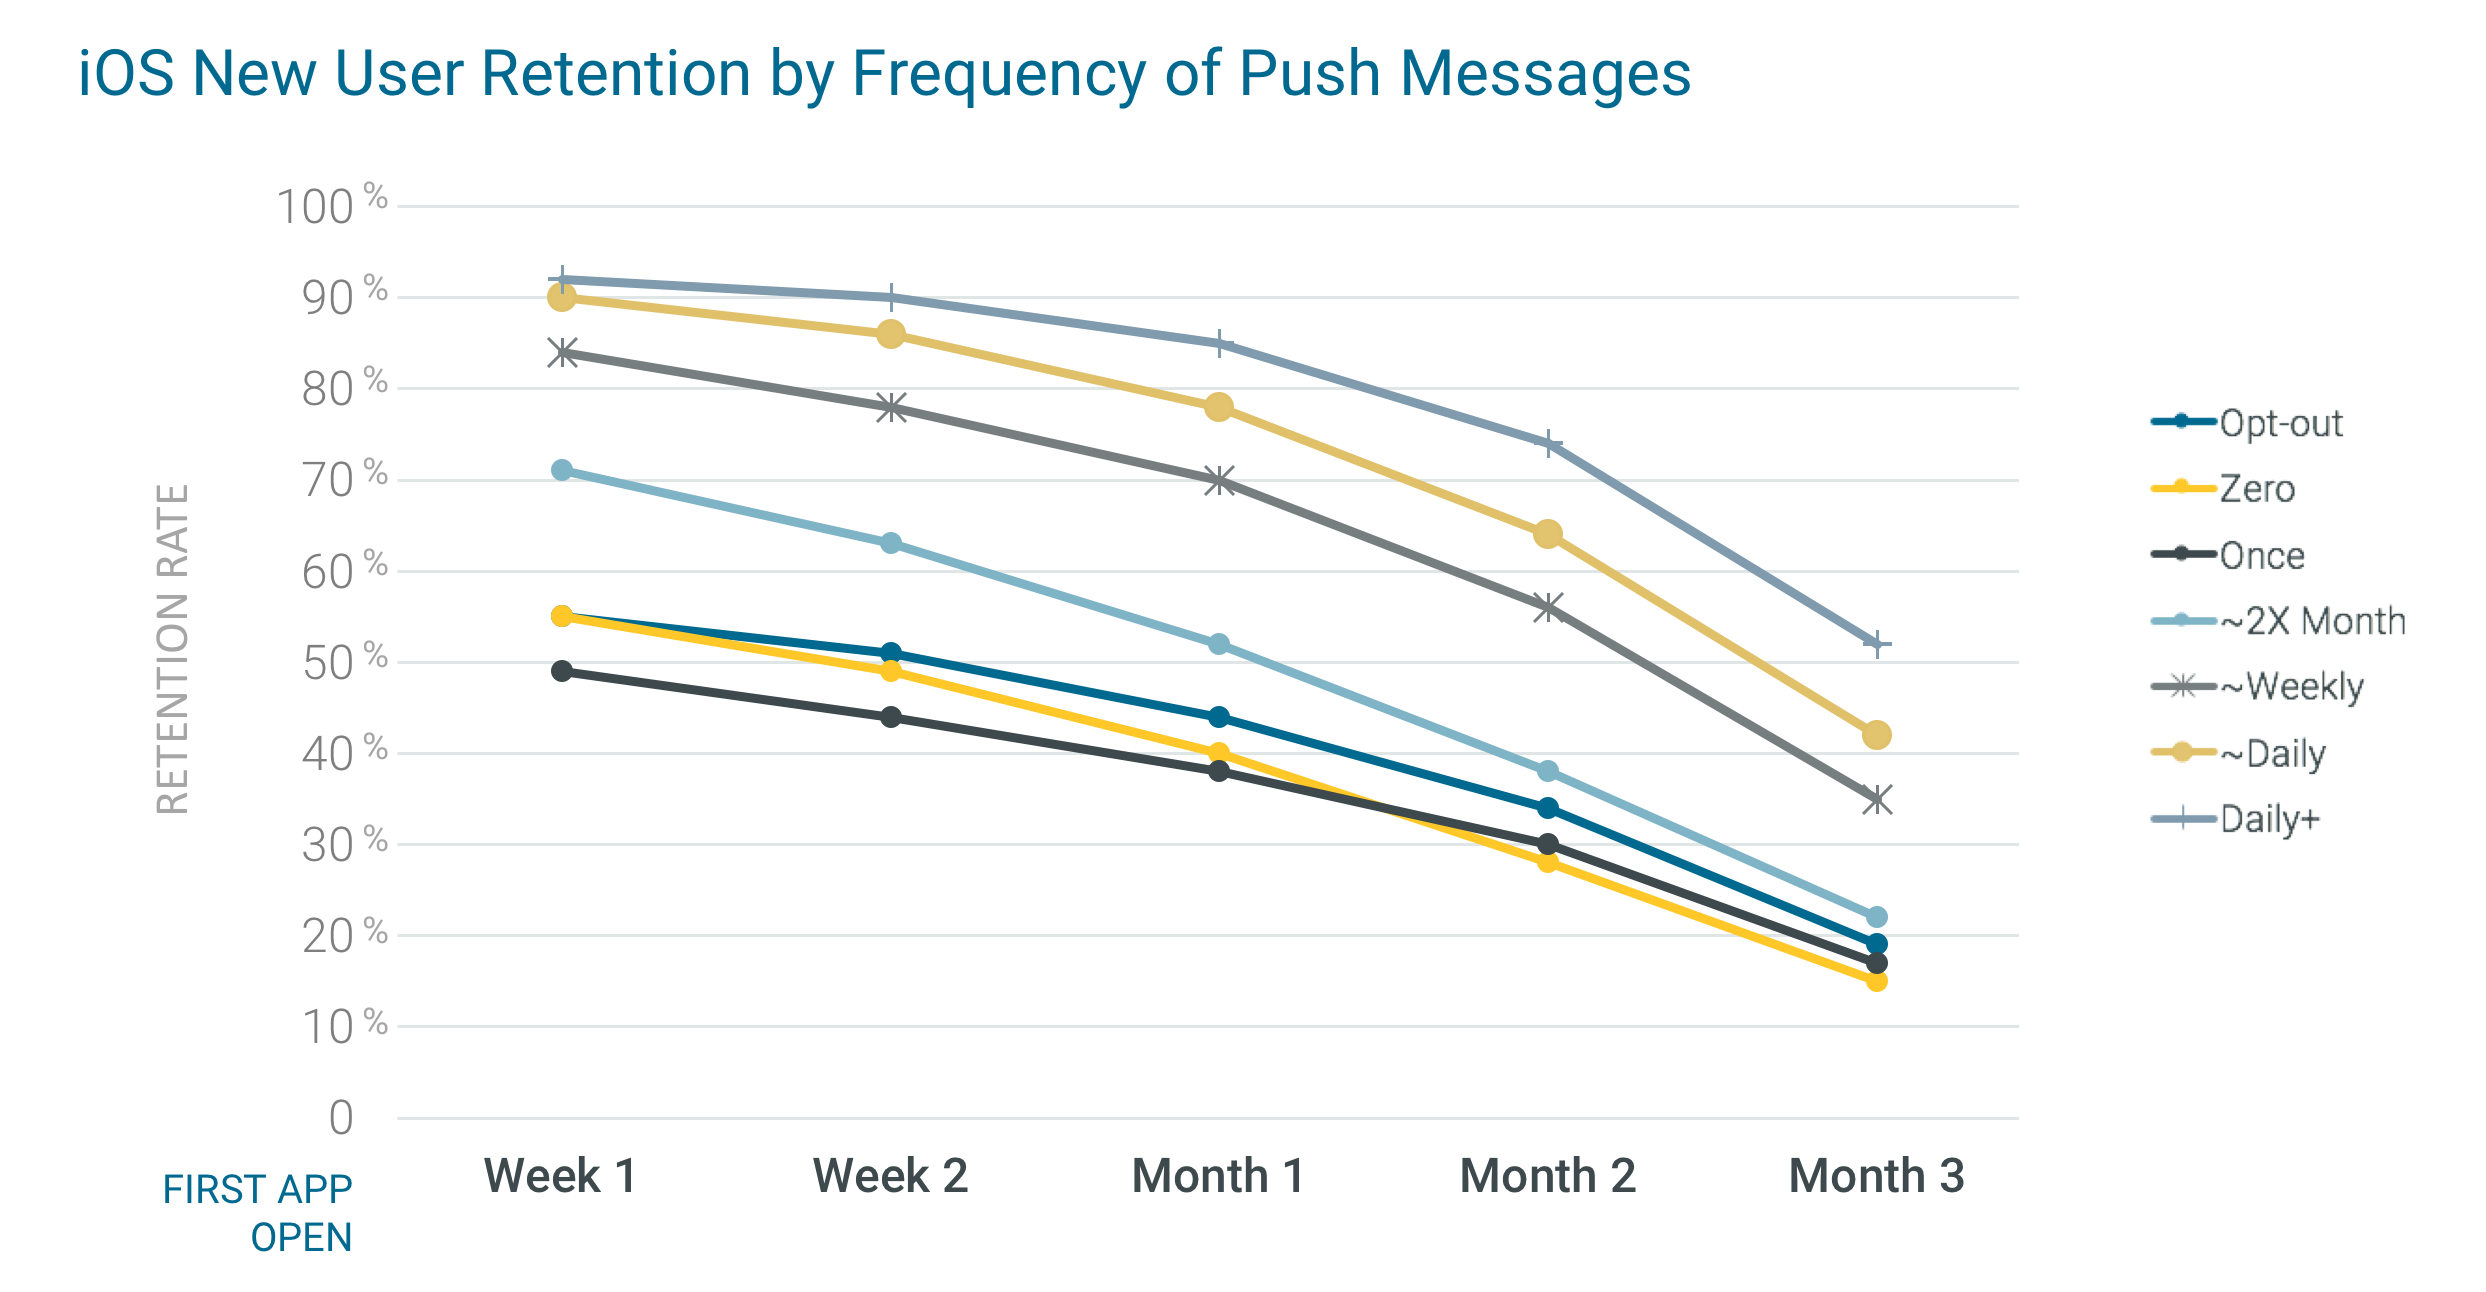 ios_new_user_mobile_app_retention_by_frequency_of_push_messages